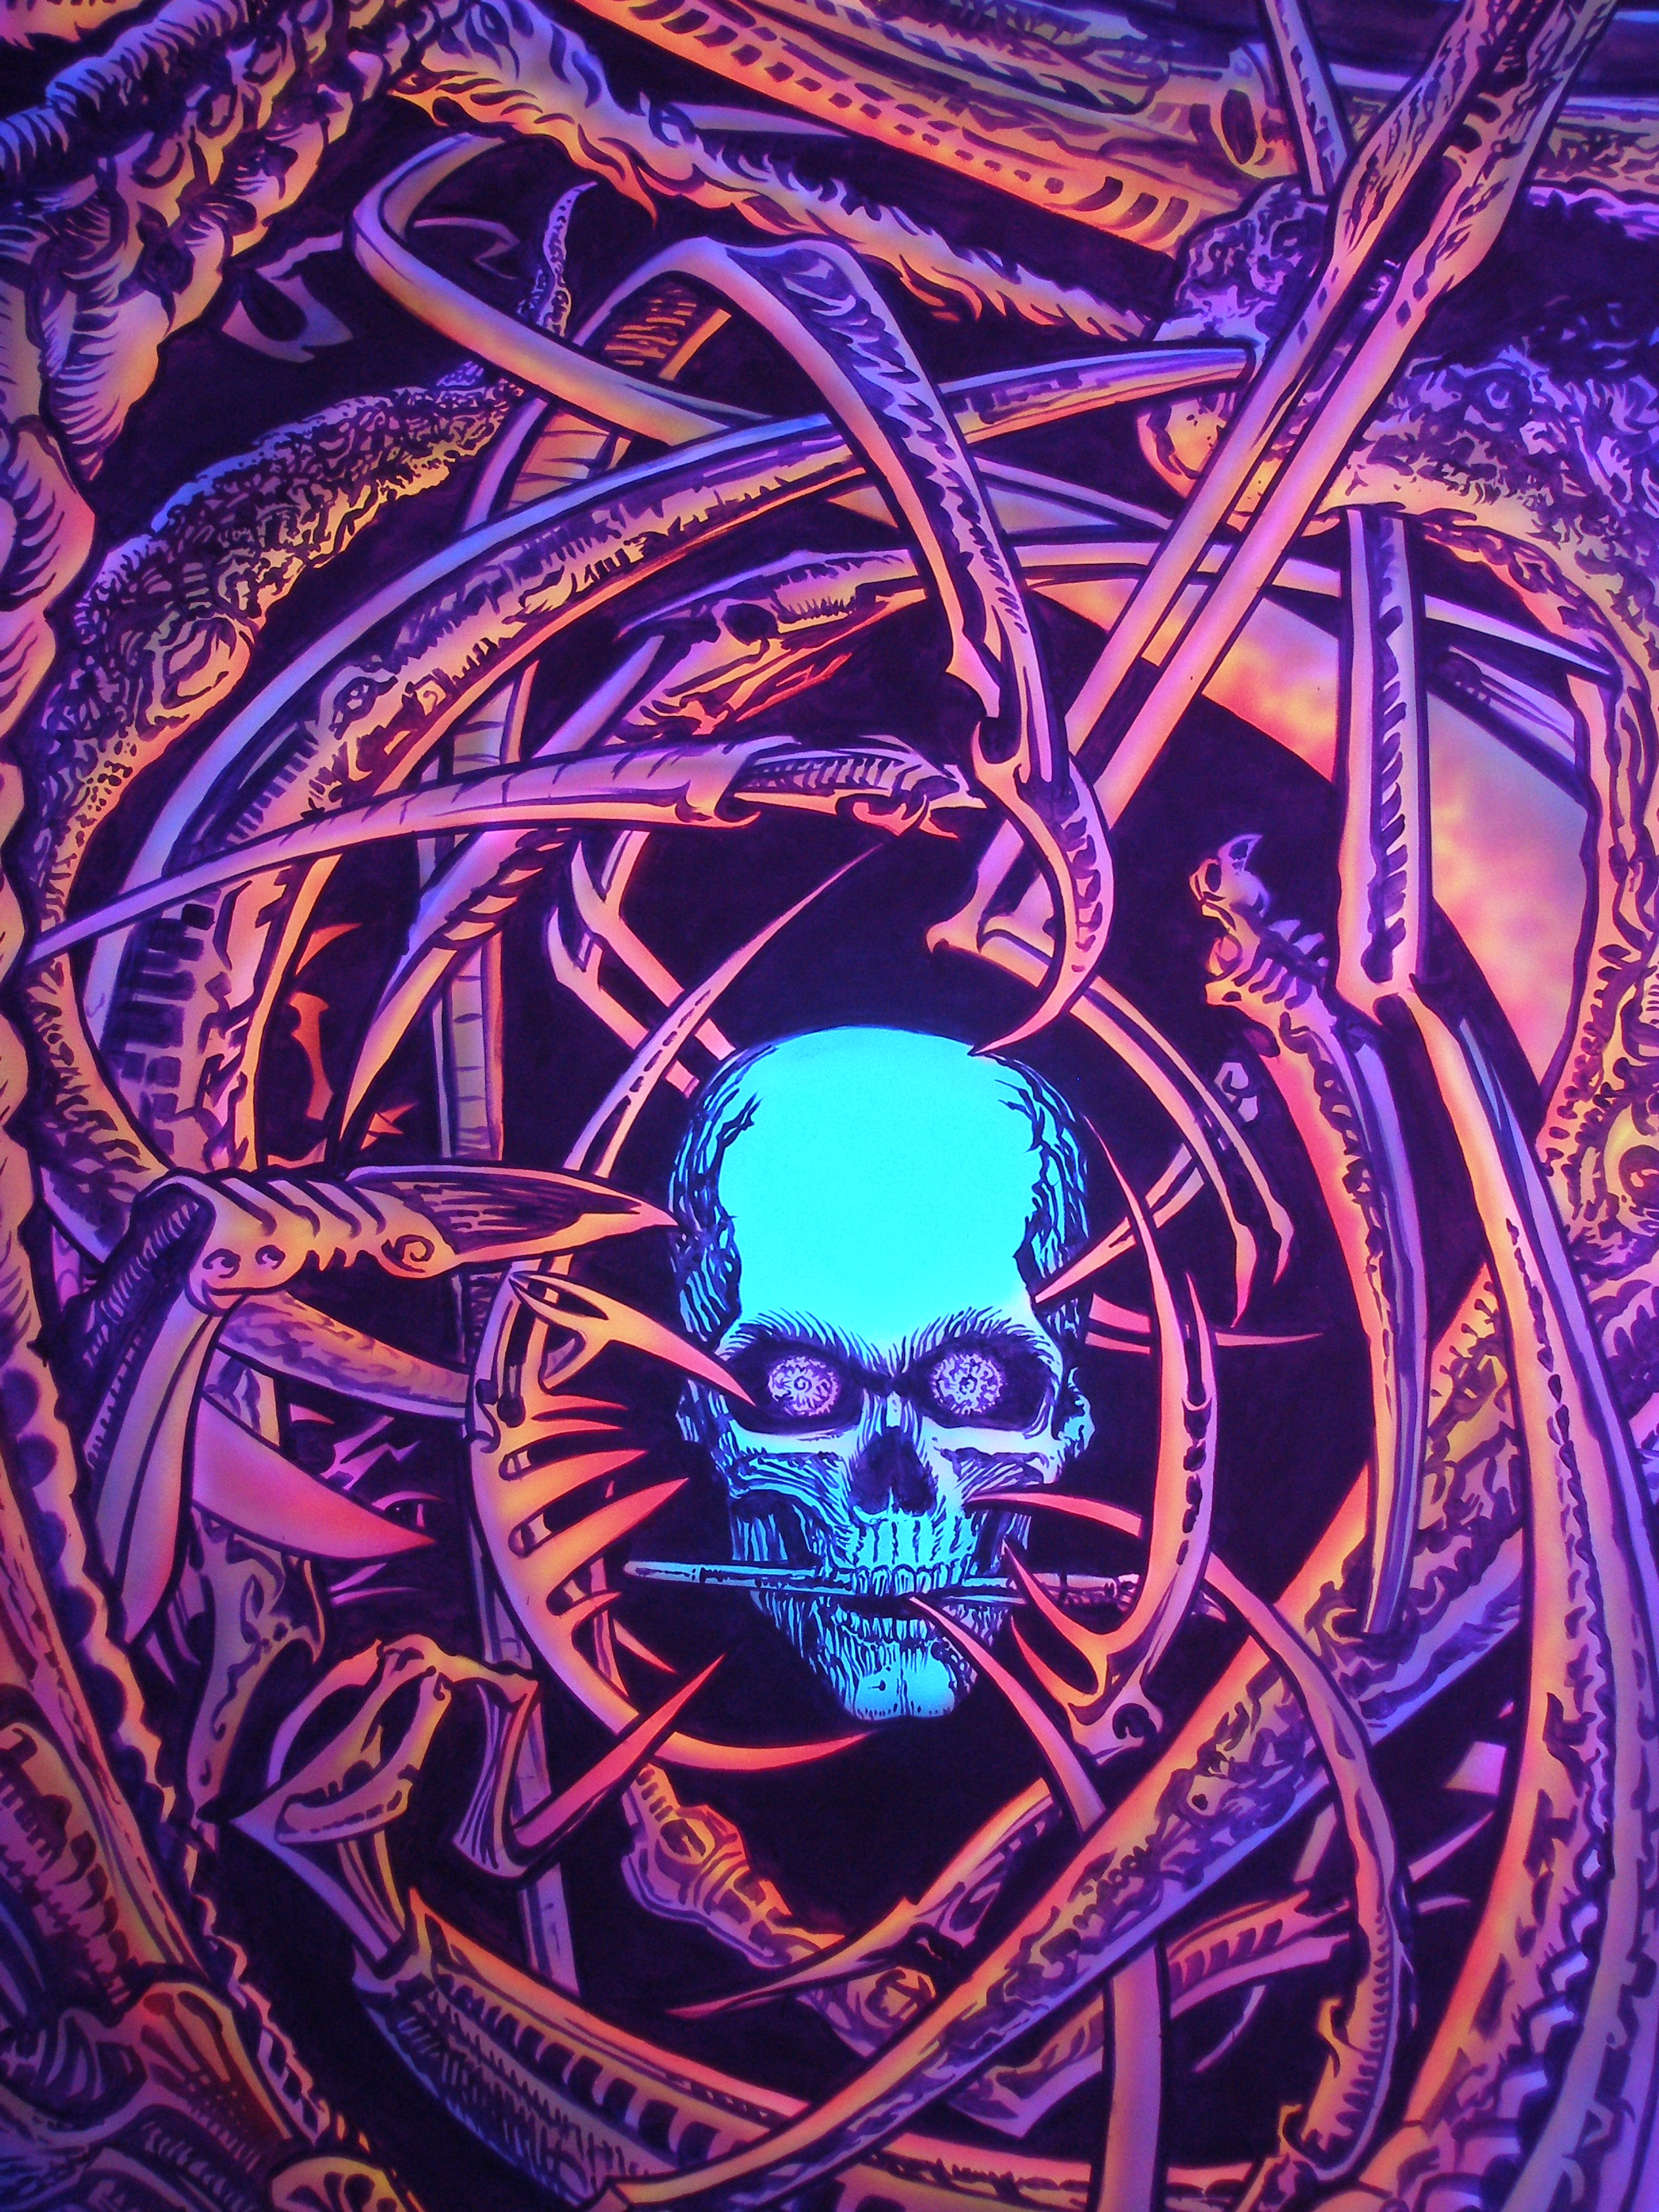 UV Black Light Art: Dual Image Under Black Light